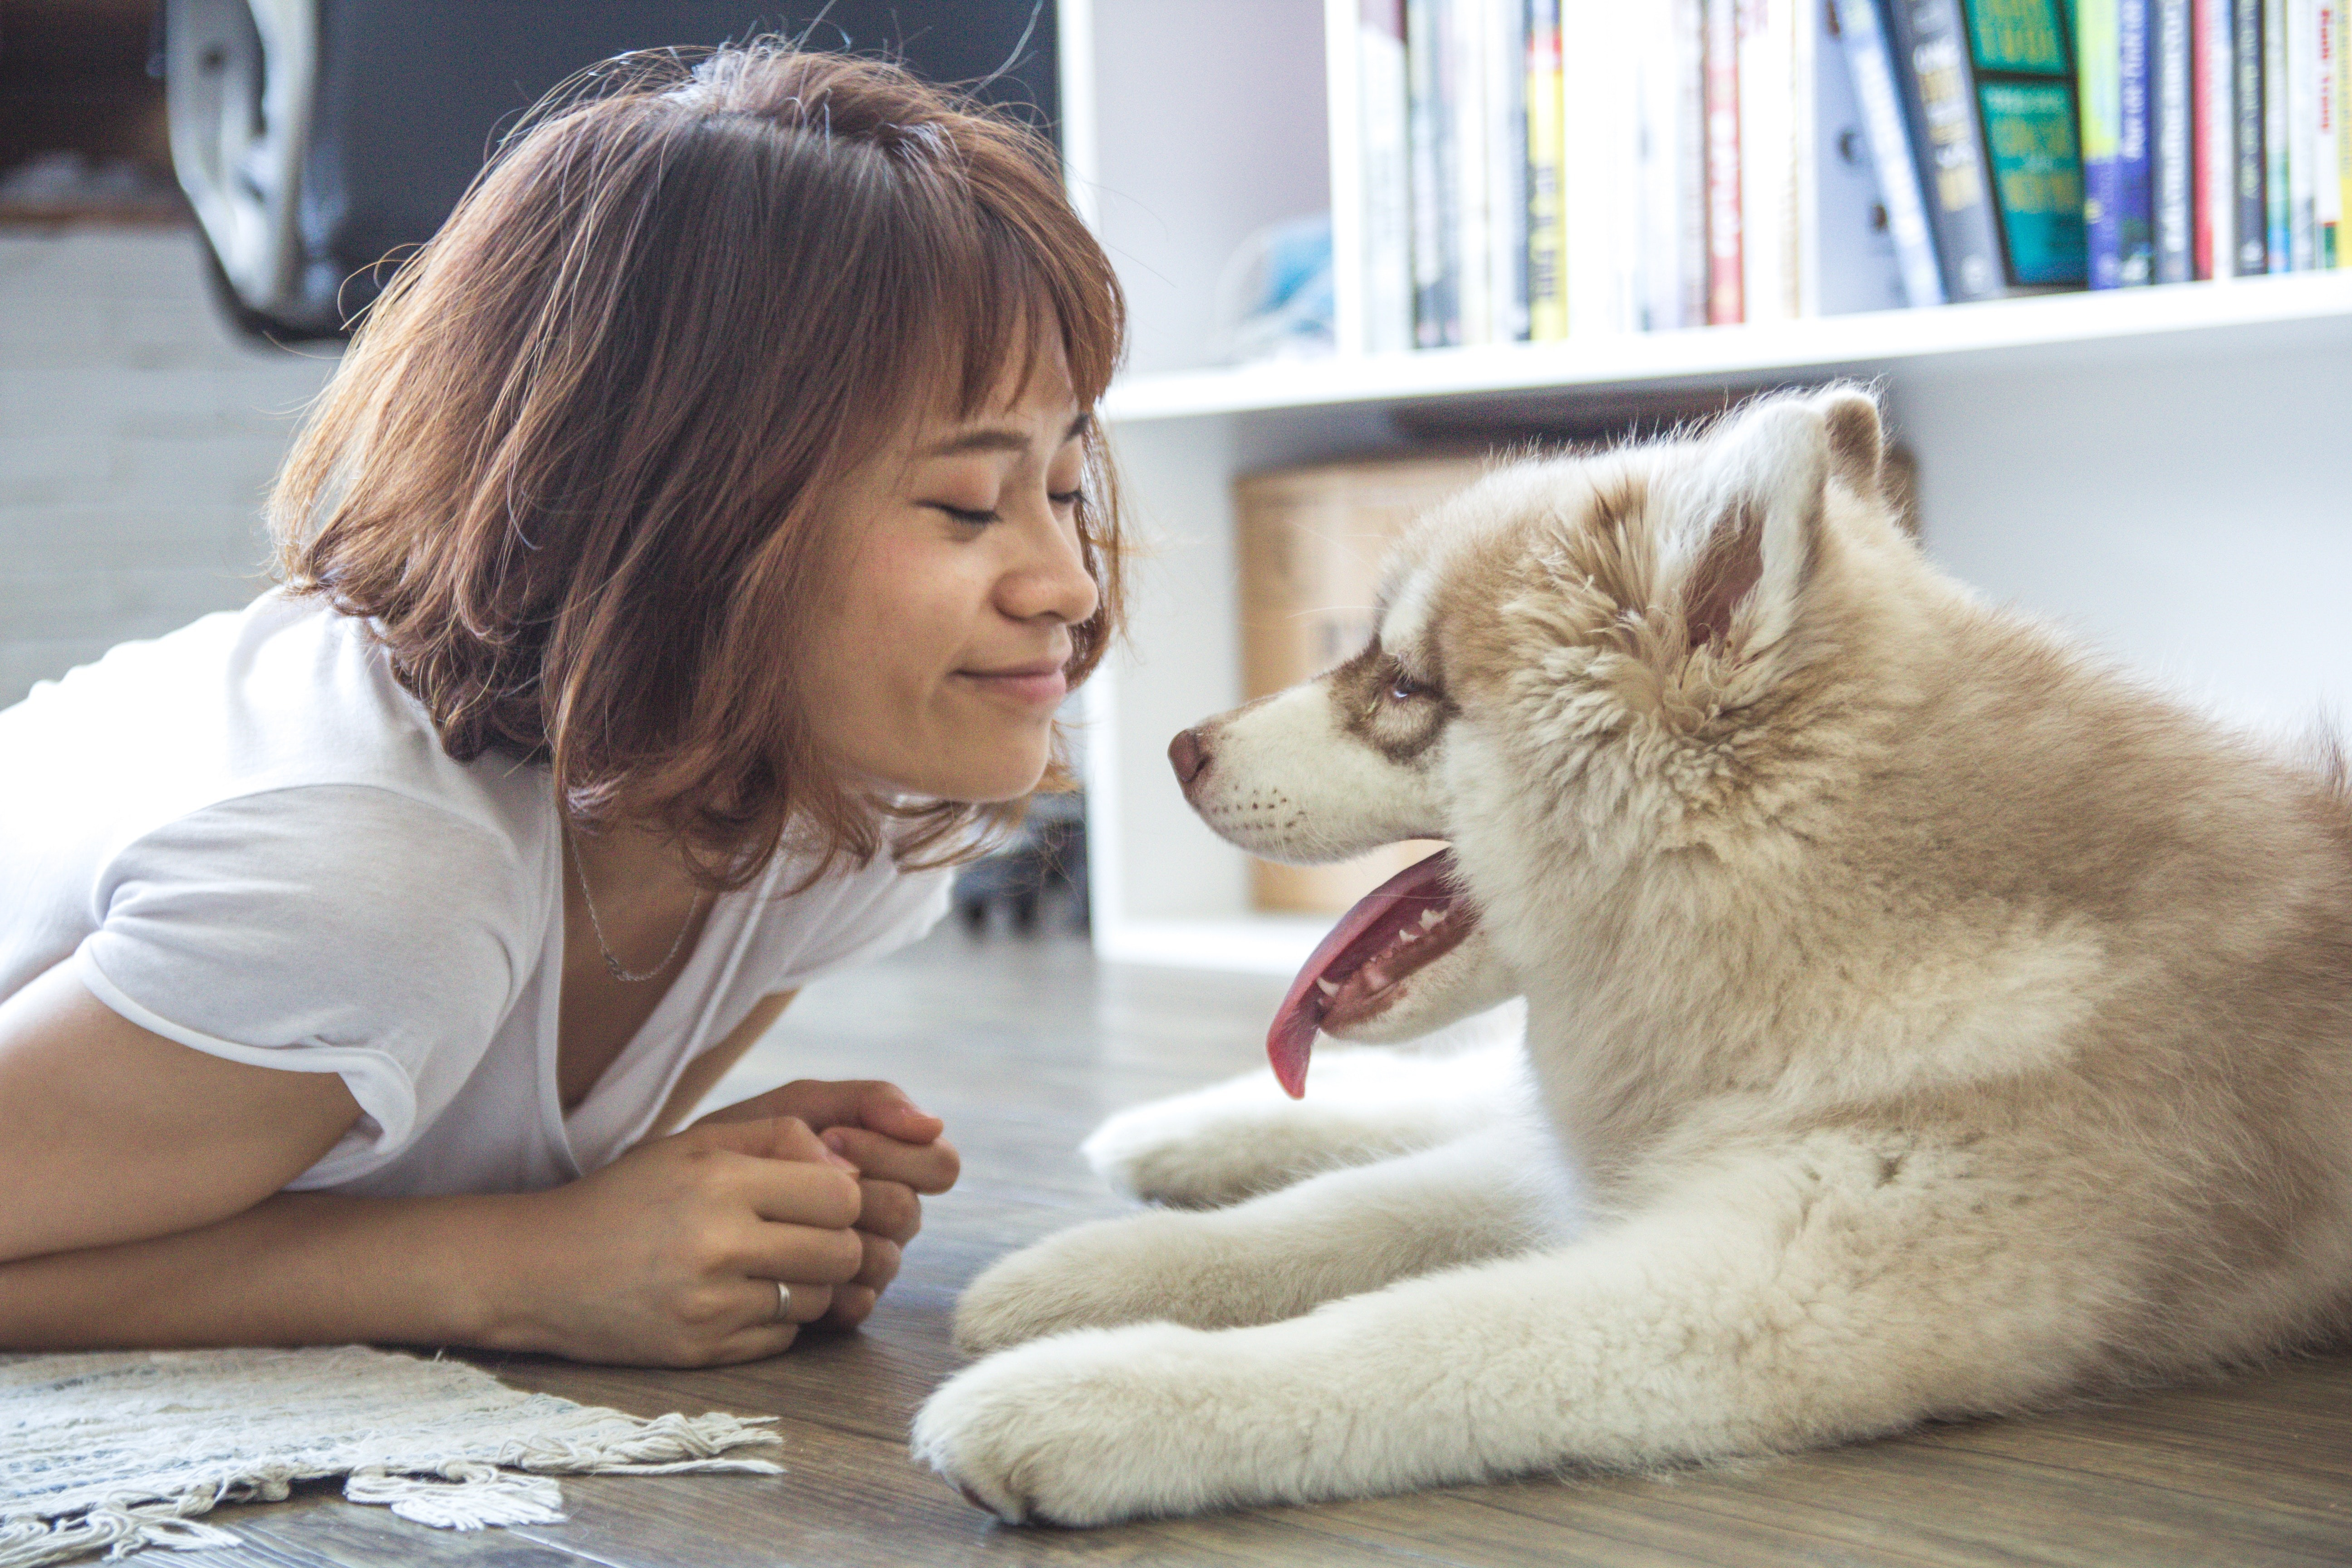 5-Perks-Your-Tenants-Will-Pay-More-For-Pets.jpg#asset:942